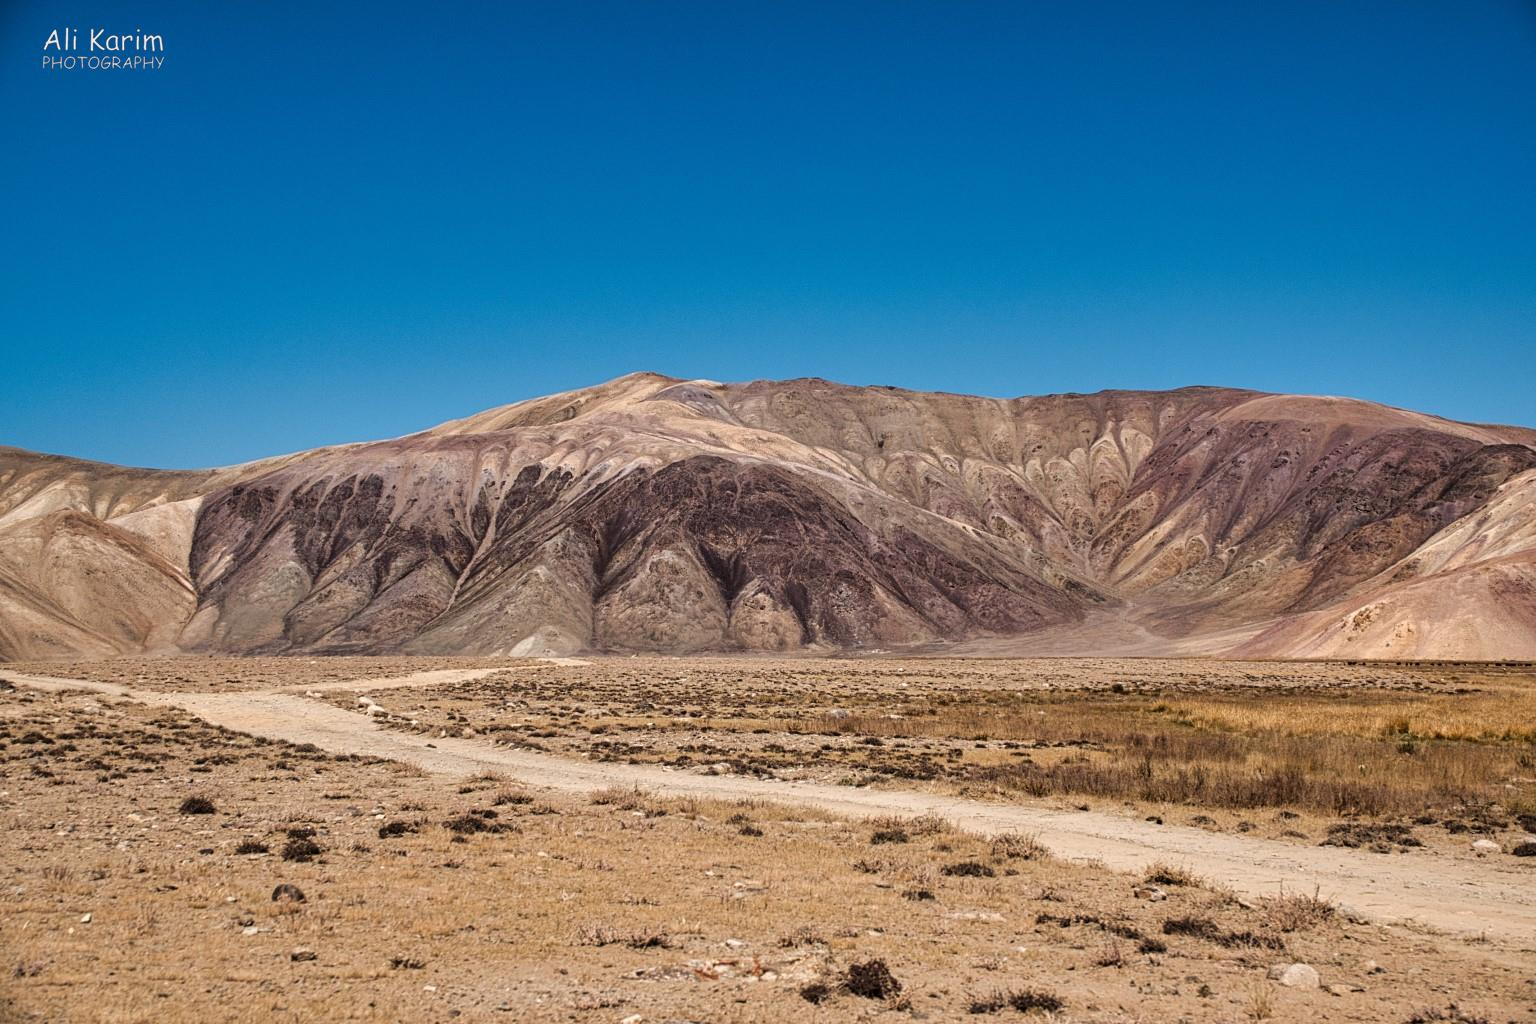 Langar, Tajikistan, Interesting eroded mountain landscape